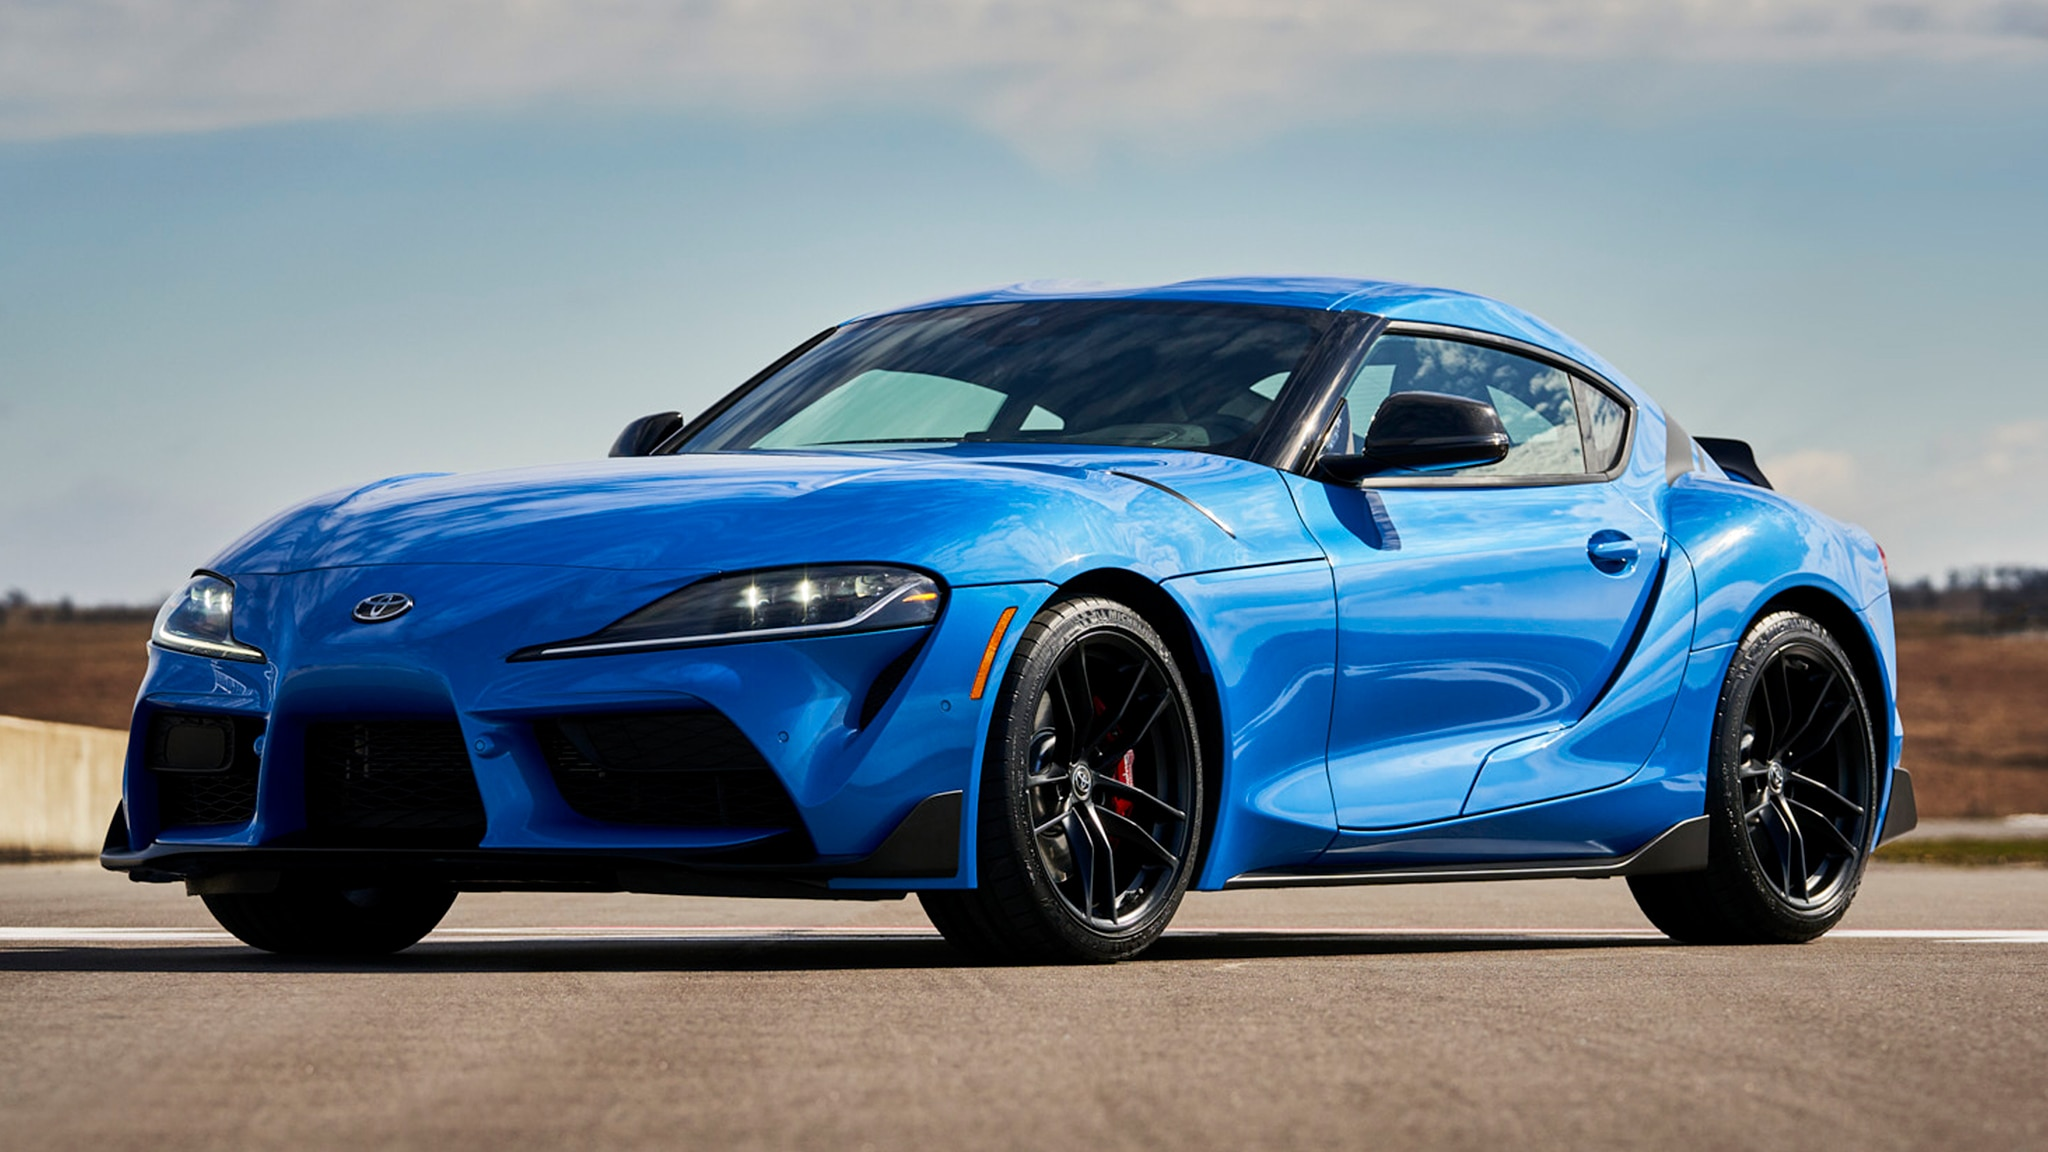 2021 Toyota Supra A91 Edition: Its Special Features Detailed - Automobile